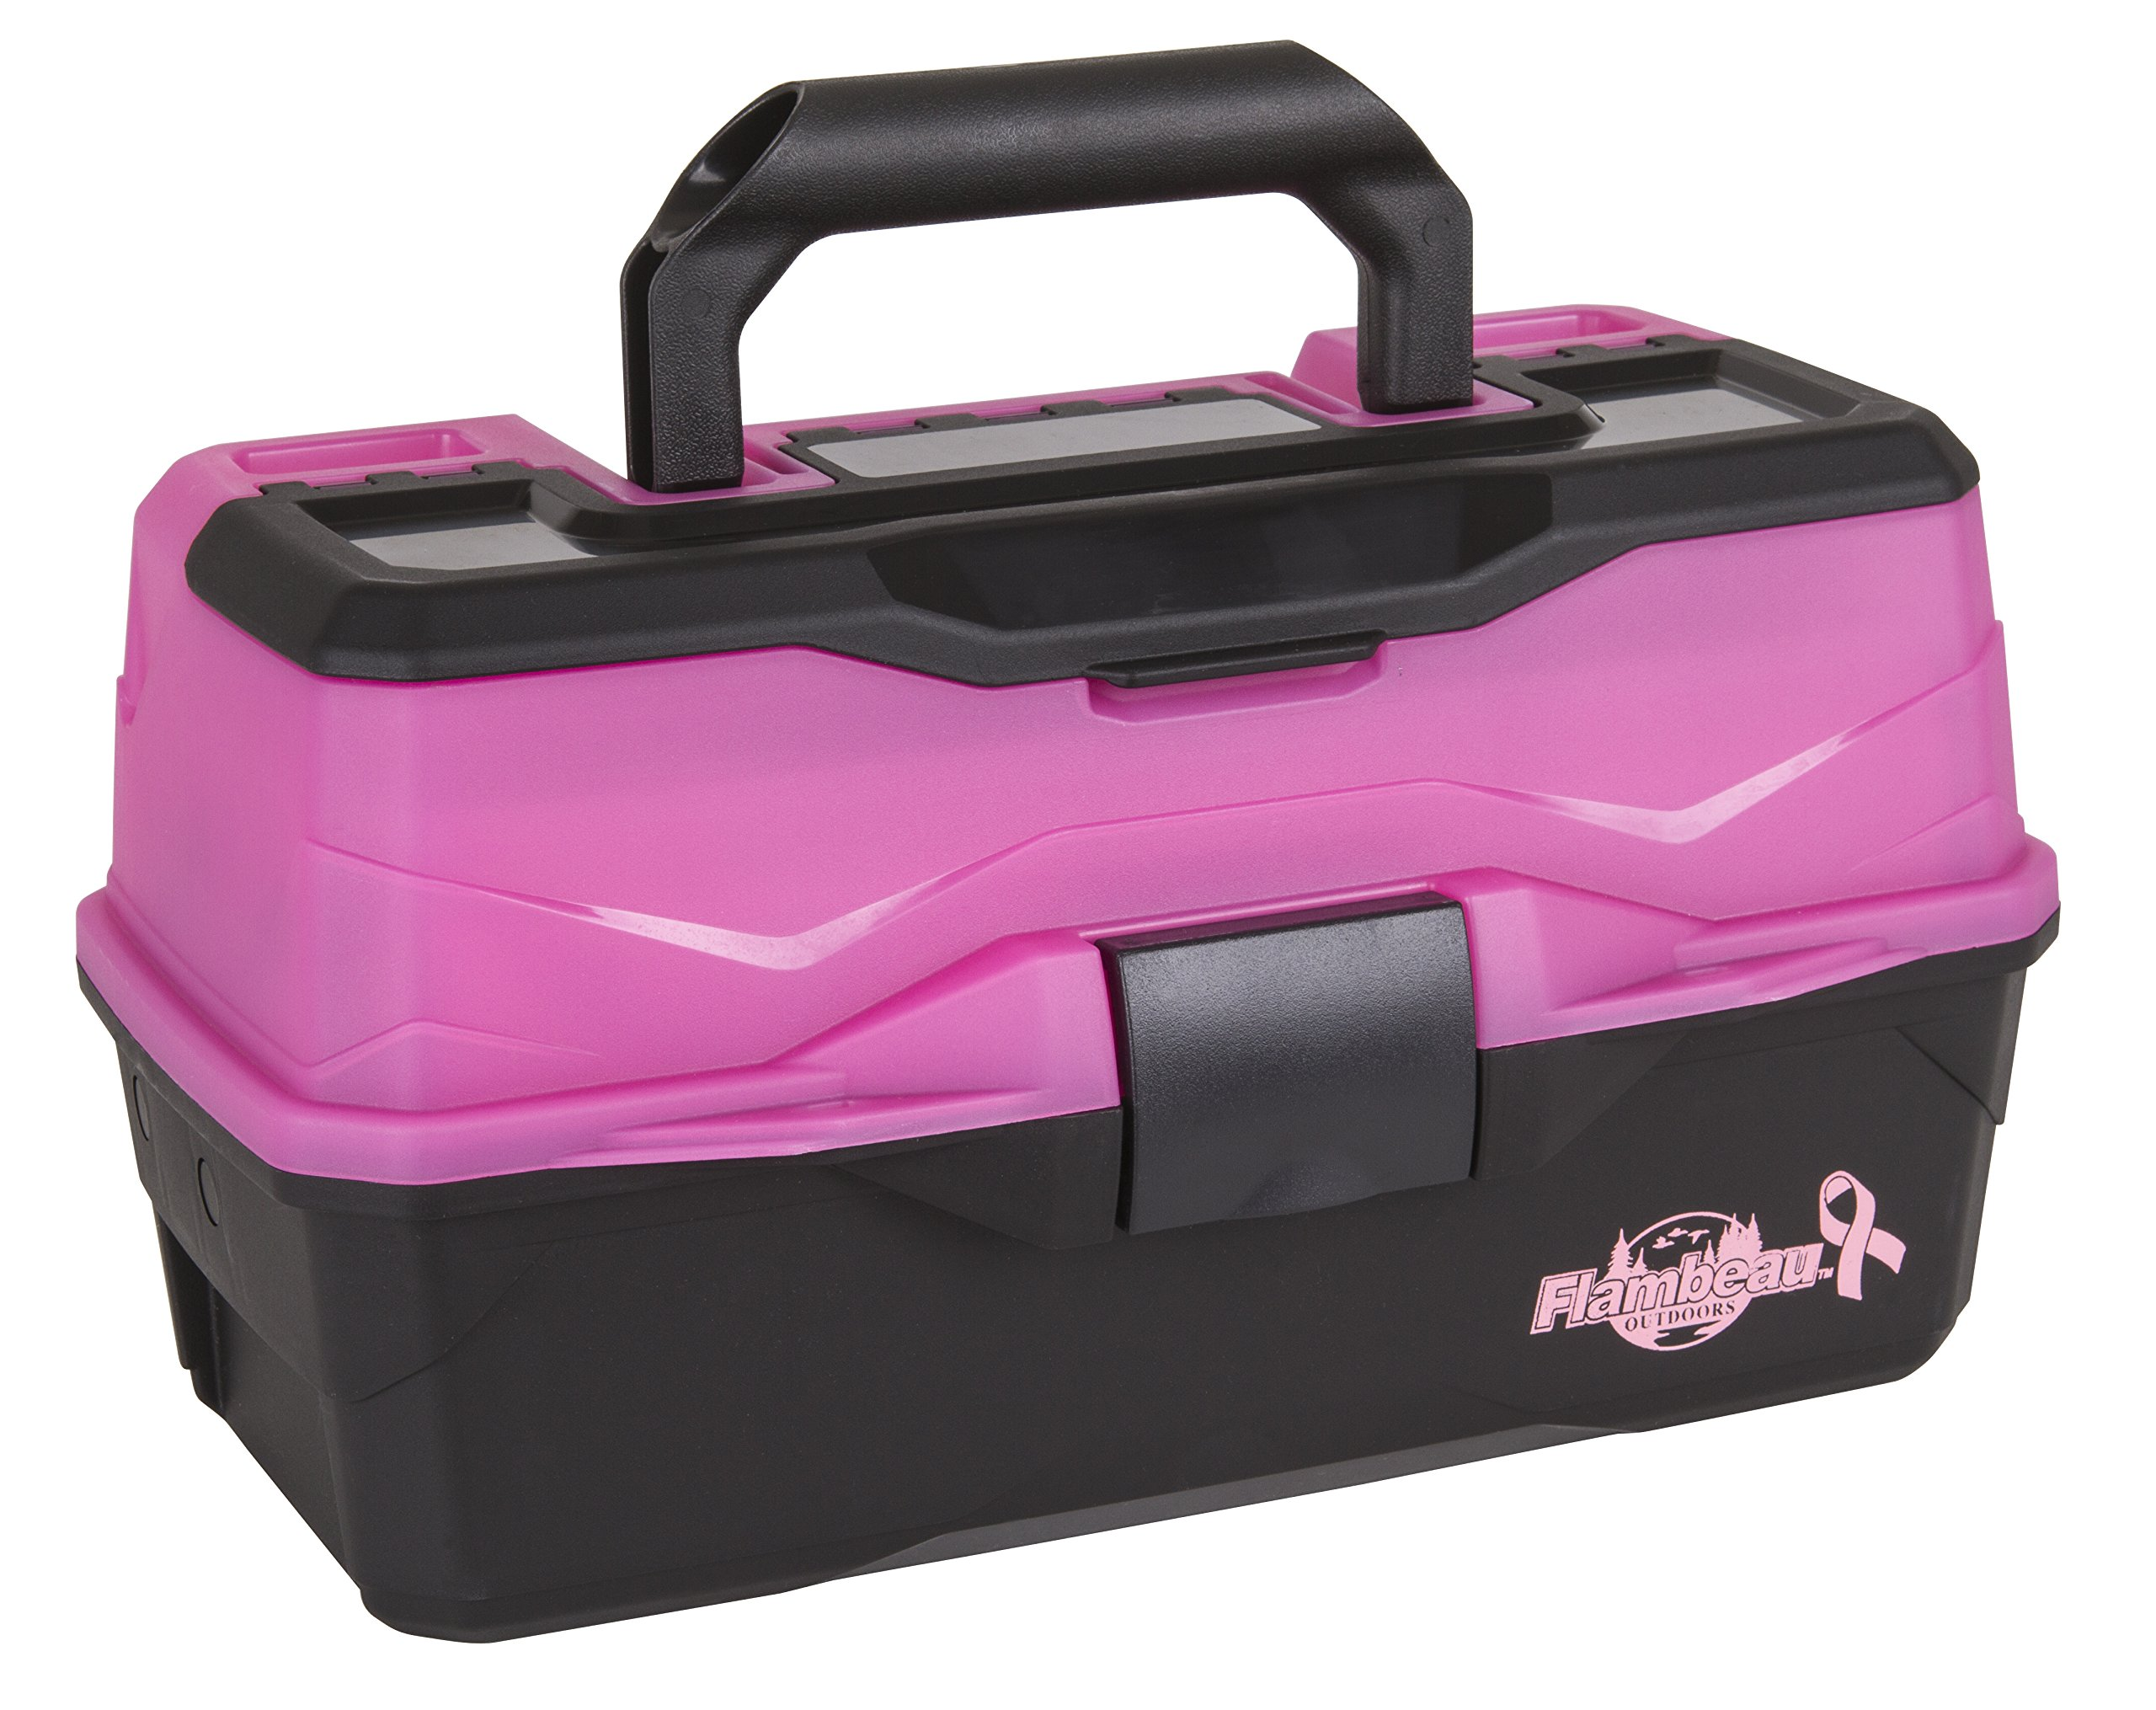 Flambeau Outdoors 6382 Classic 2-Tray Tackle Box, Frost Pink/Black